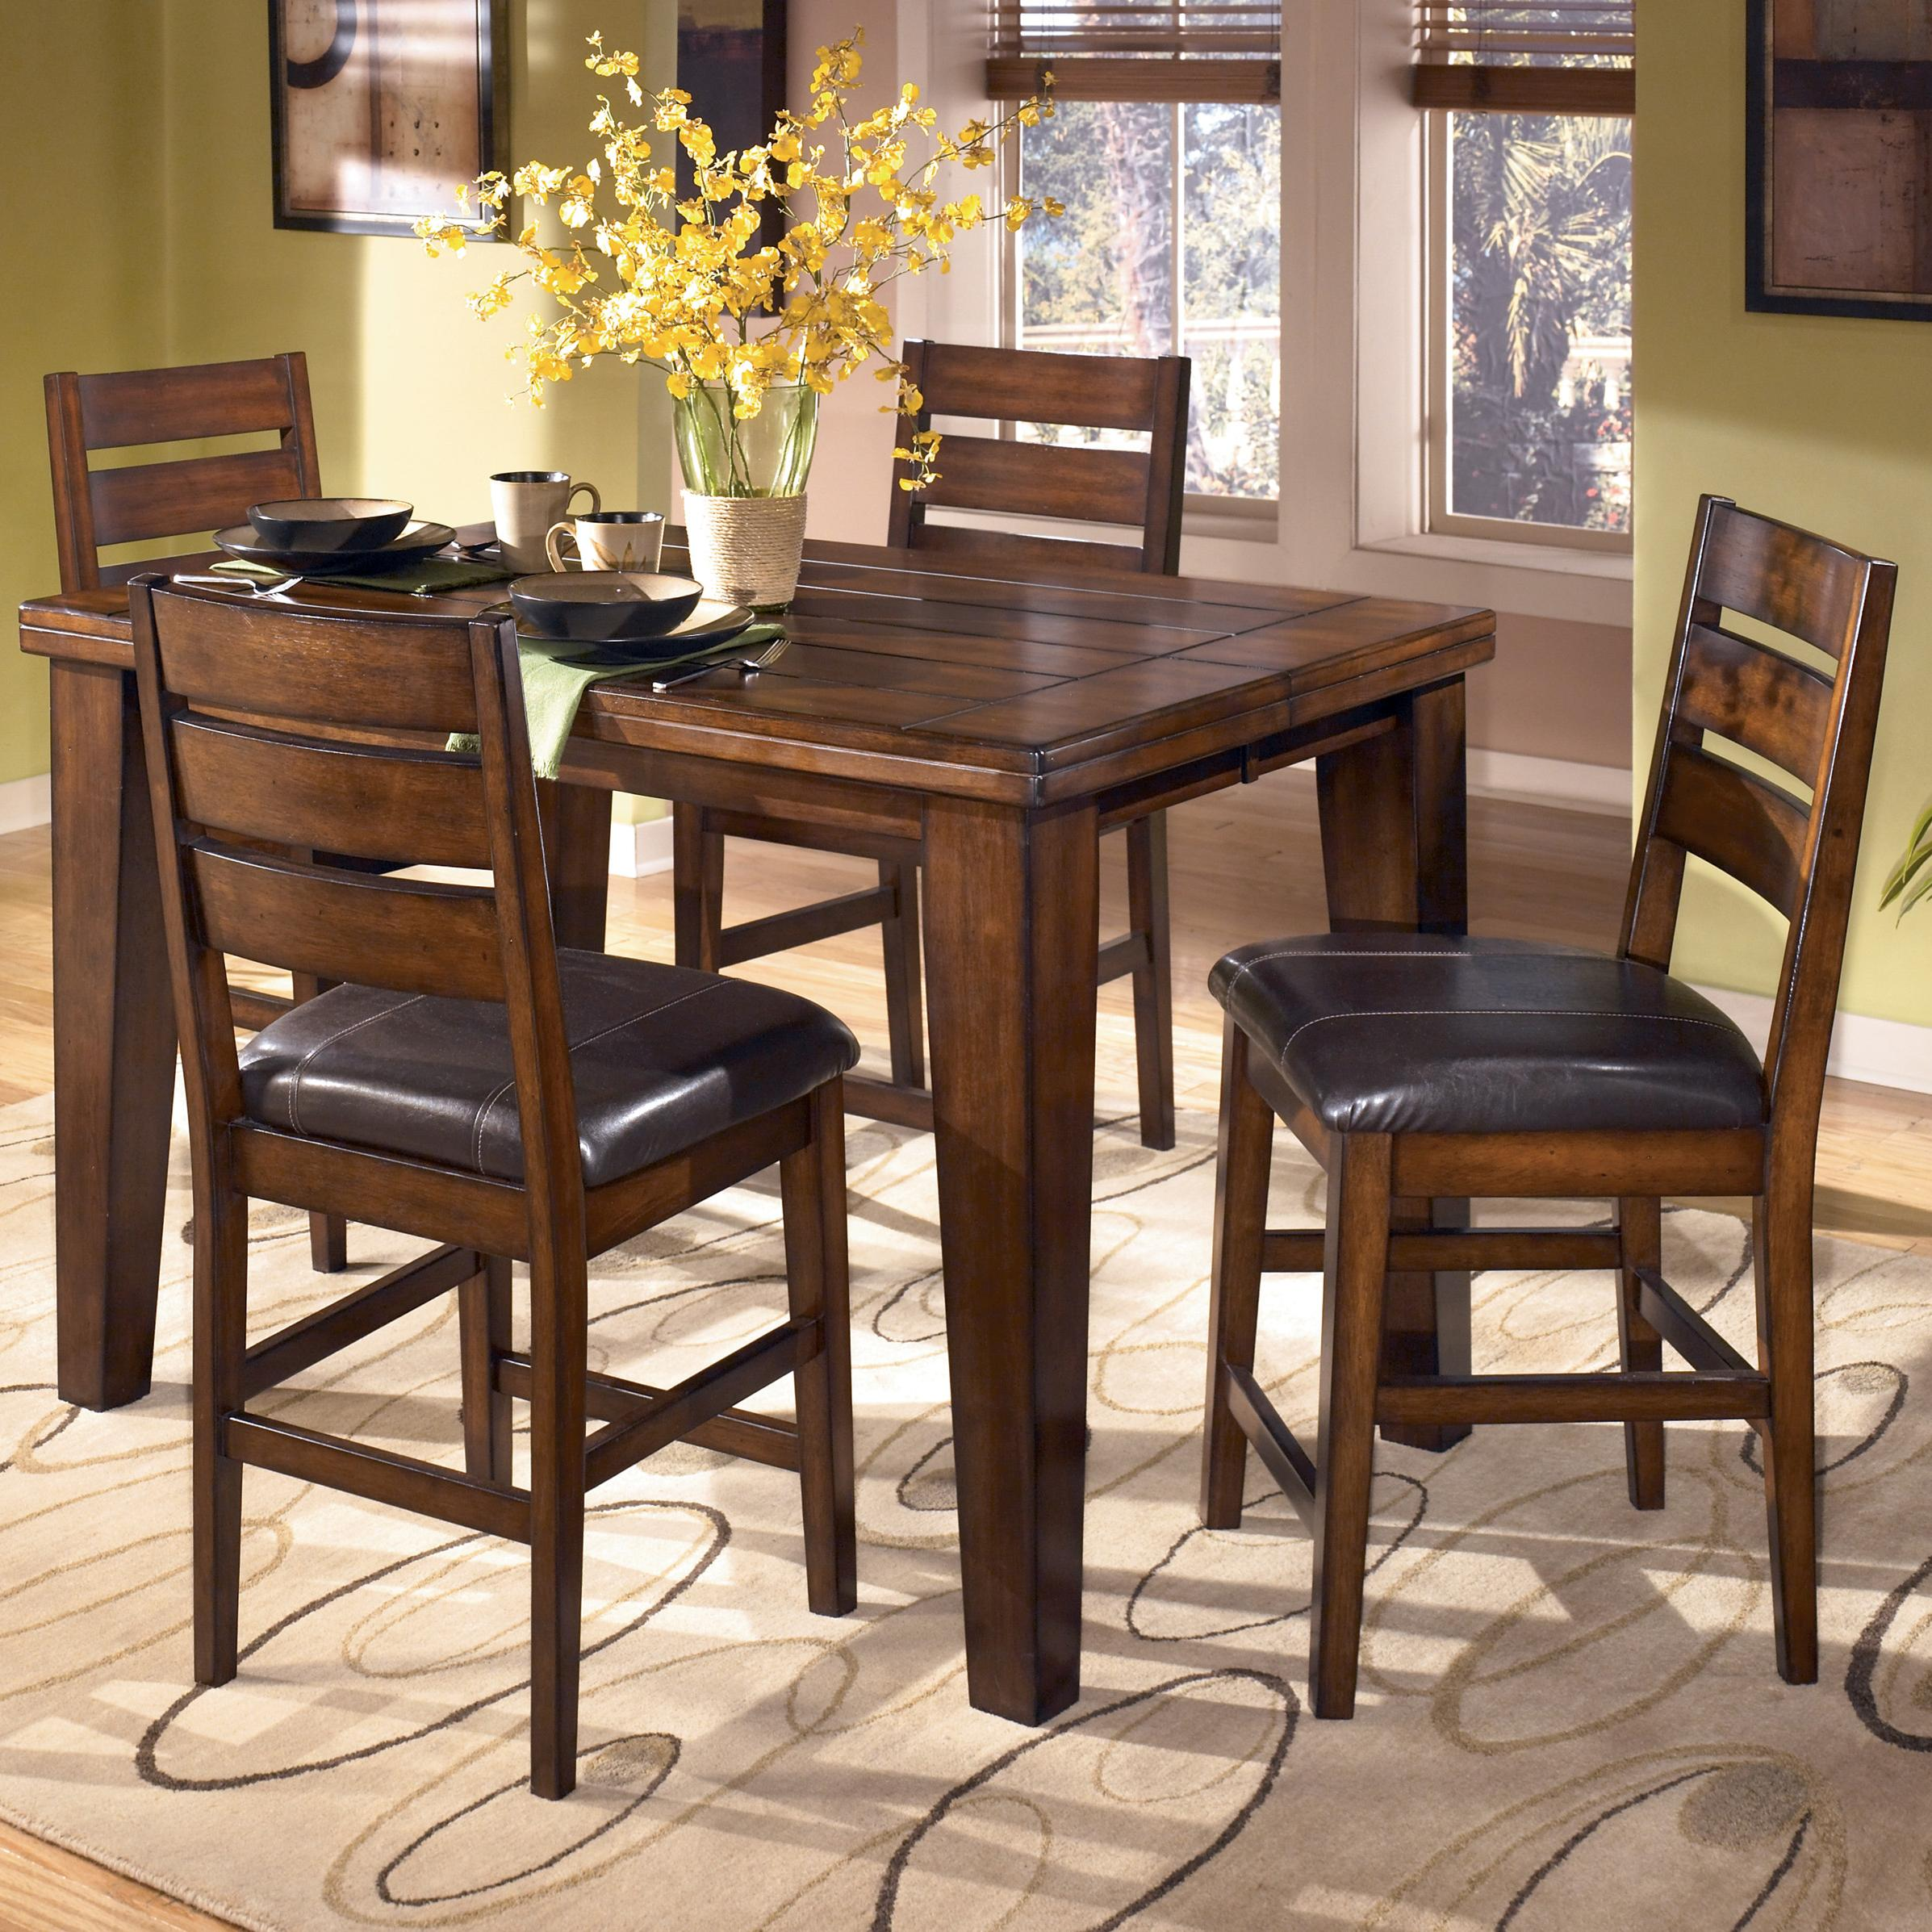 Counter Erfly Table And 4 Stools